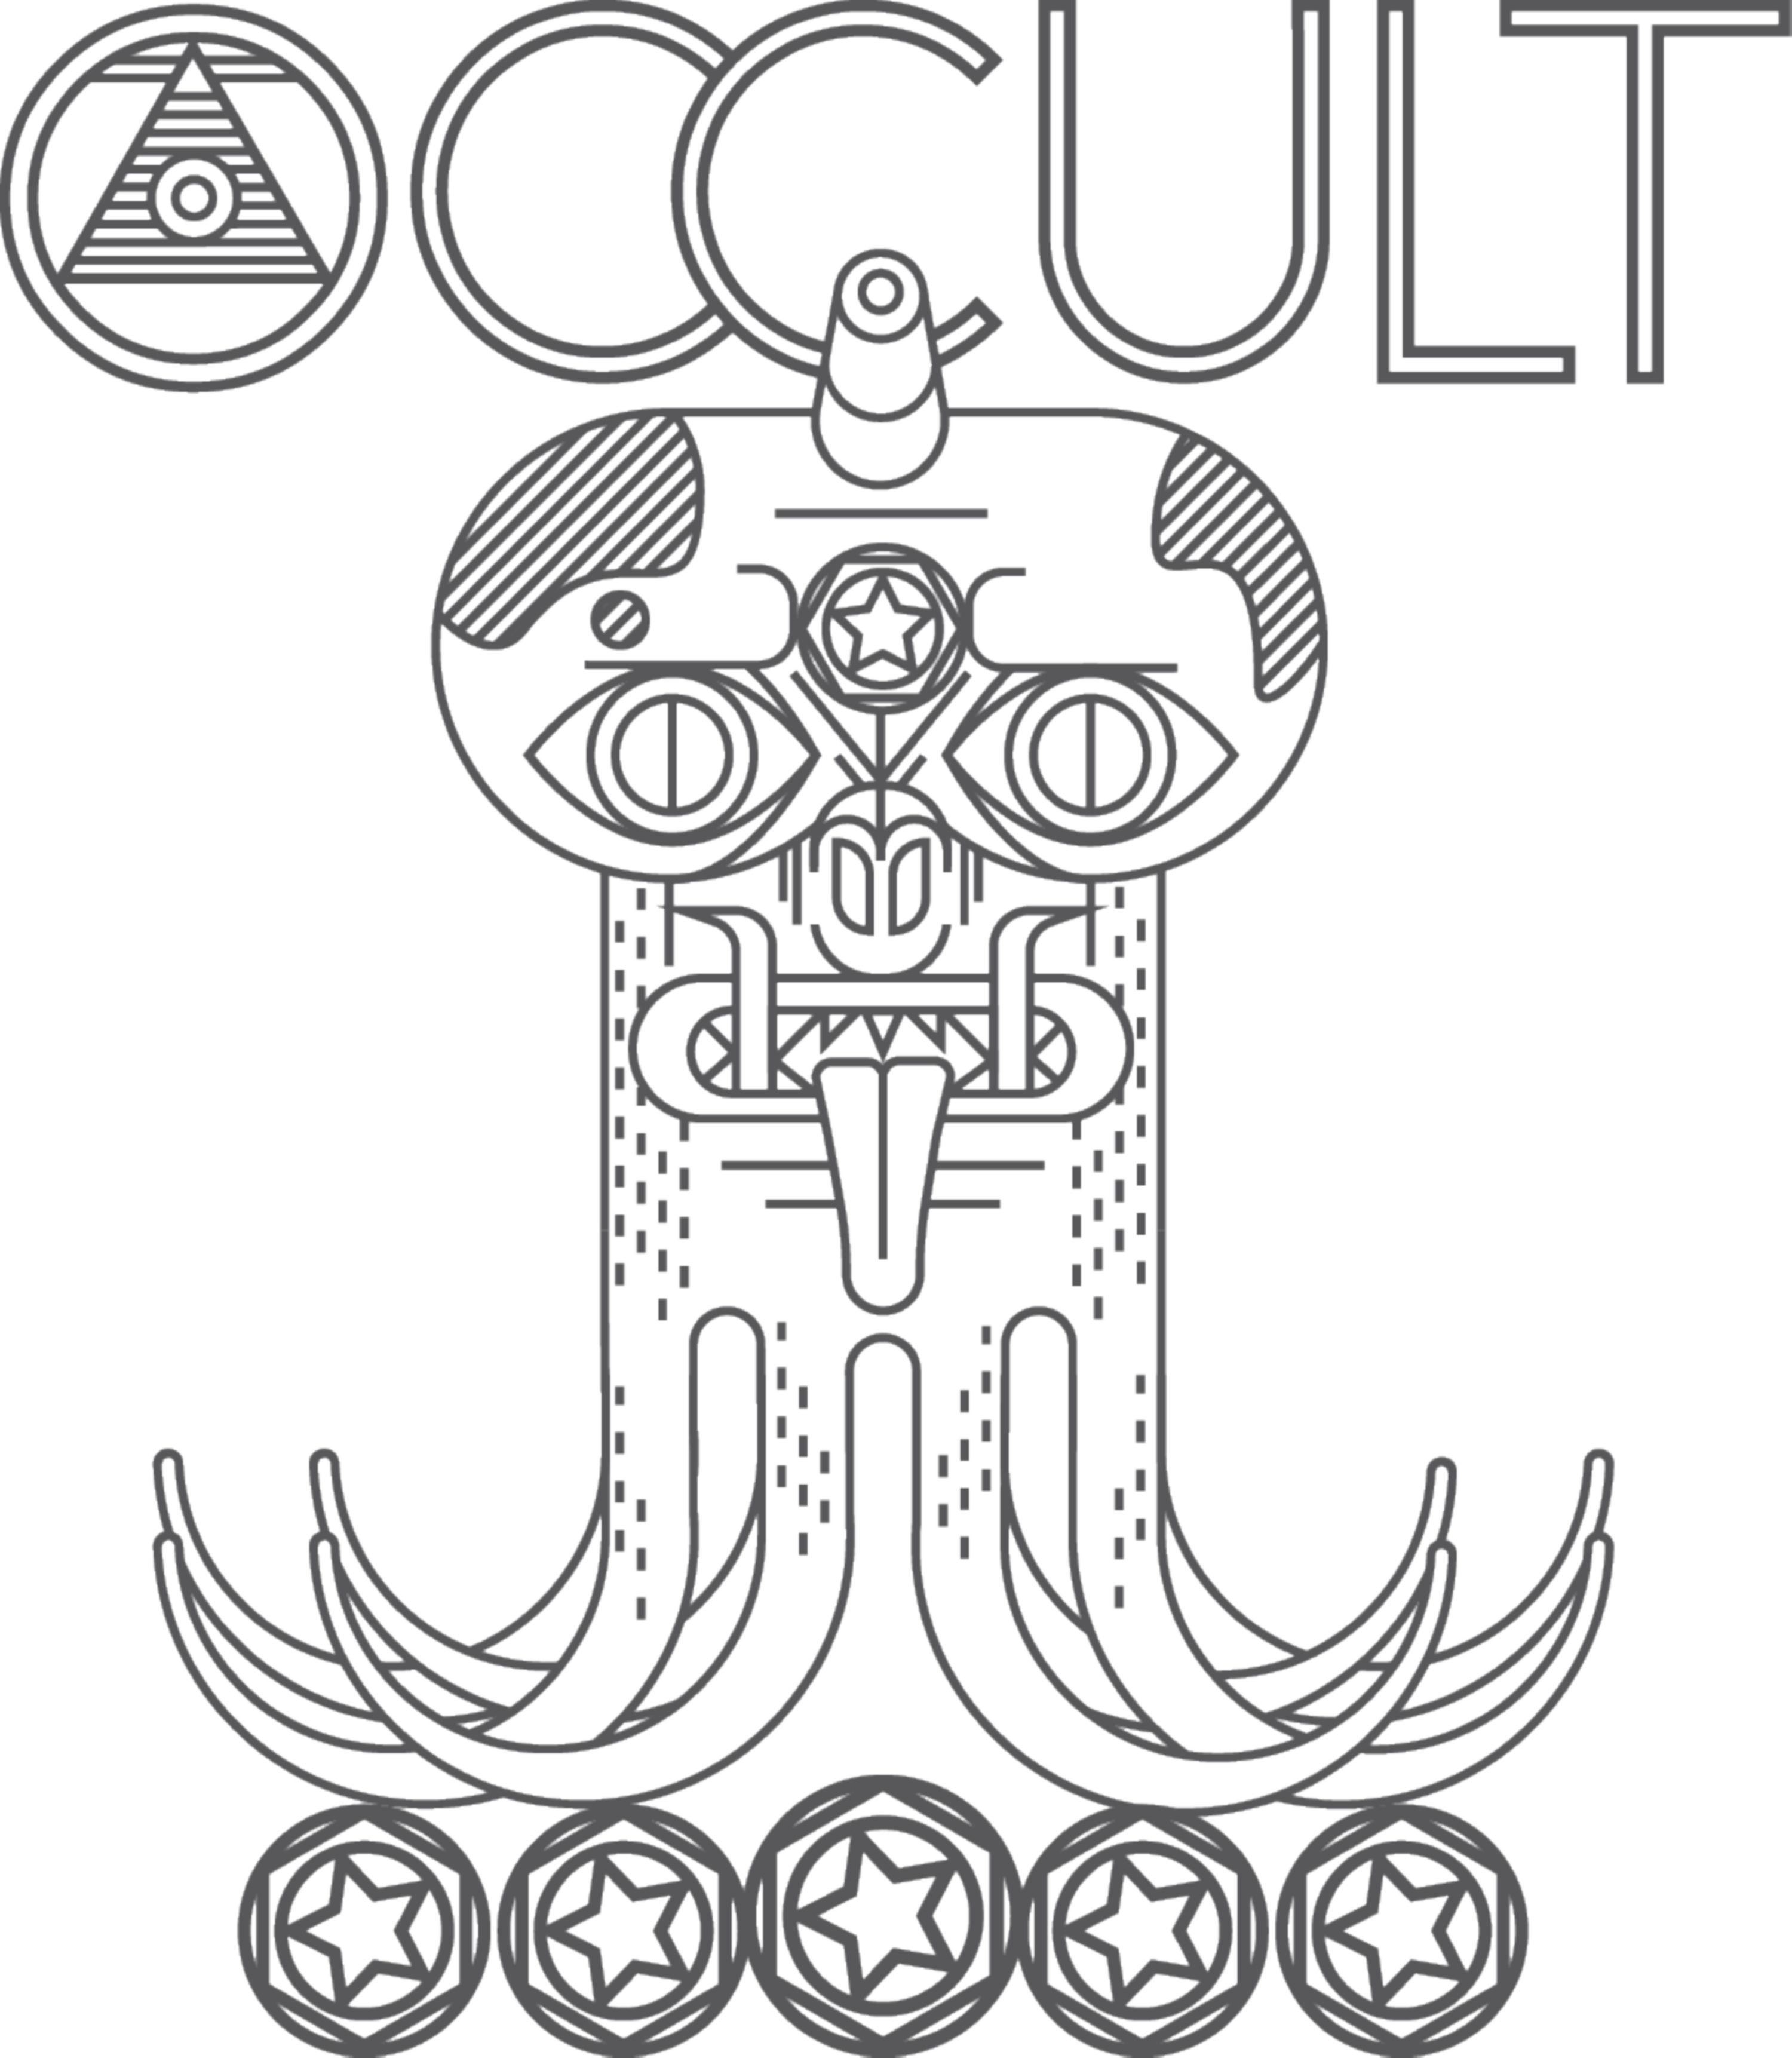 Occult drawing. The dots